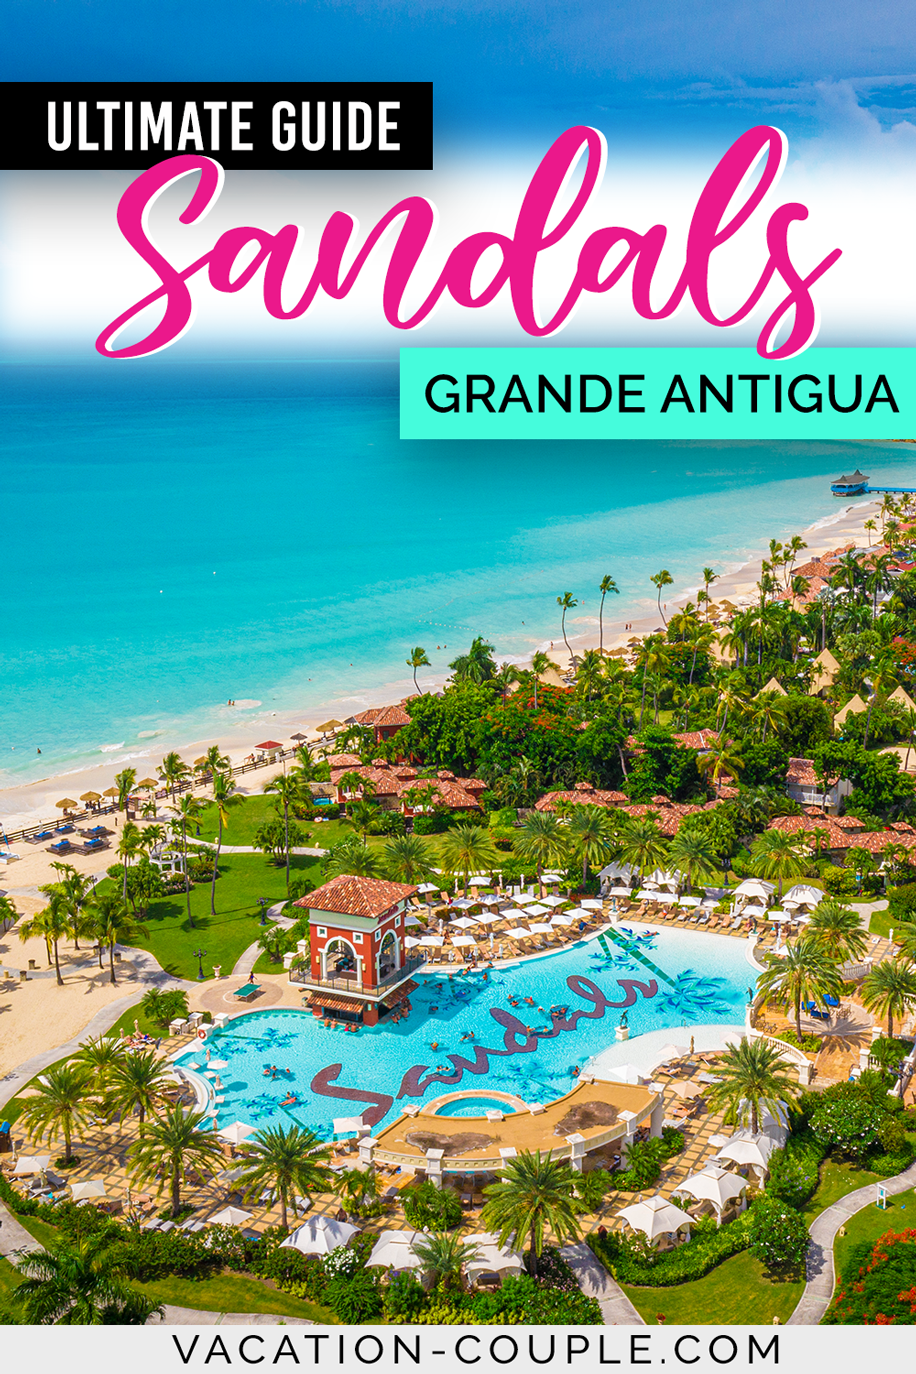 Sandals Grande Antigua Review: The Ultimate Guide